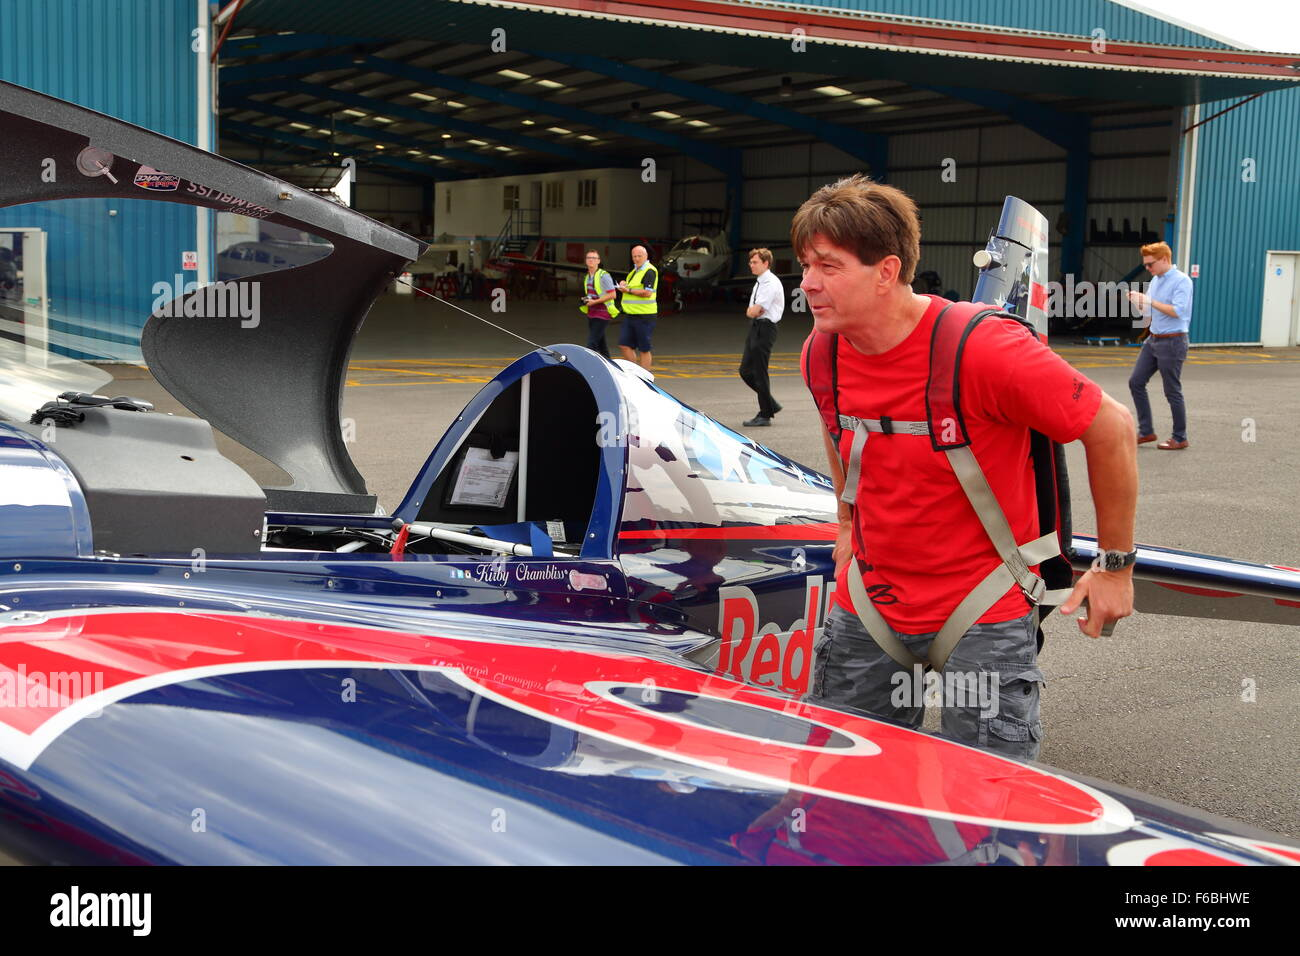 Kirby Chambliss at Wycombe Airpark preparing for the Red Bull Air Race at Ascot 2015 - Stock Image